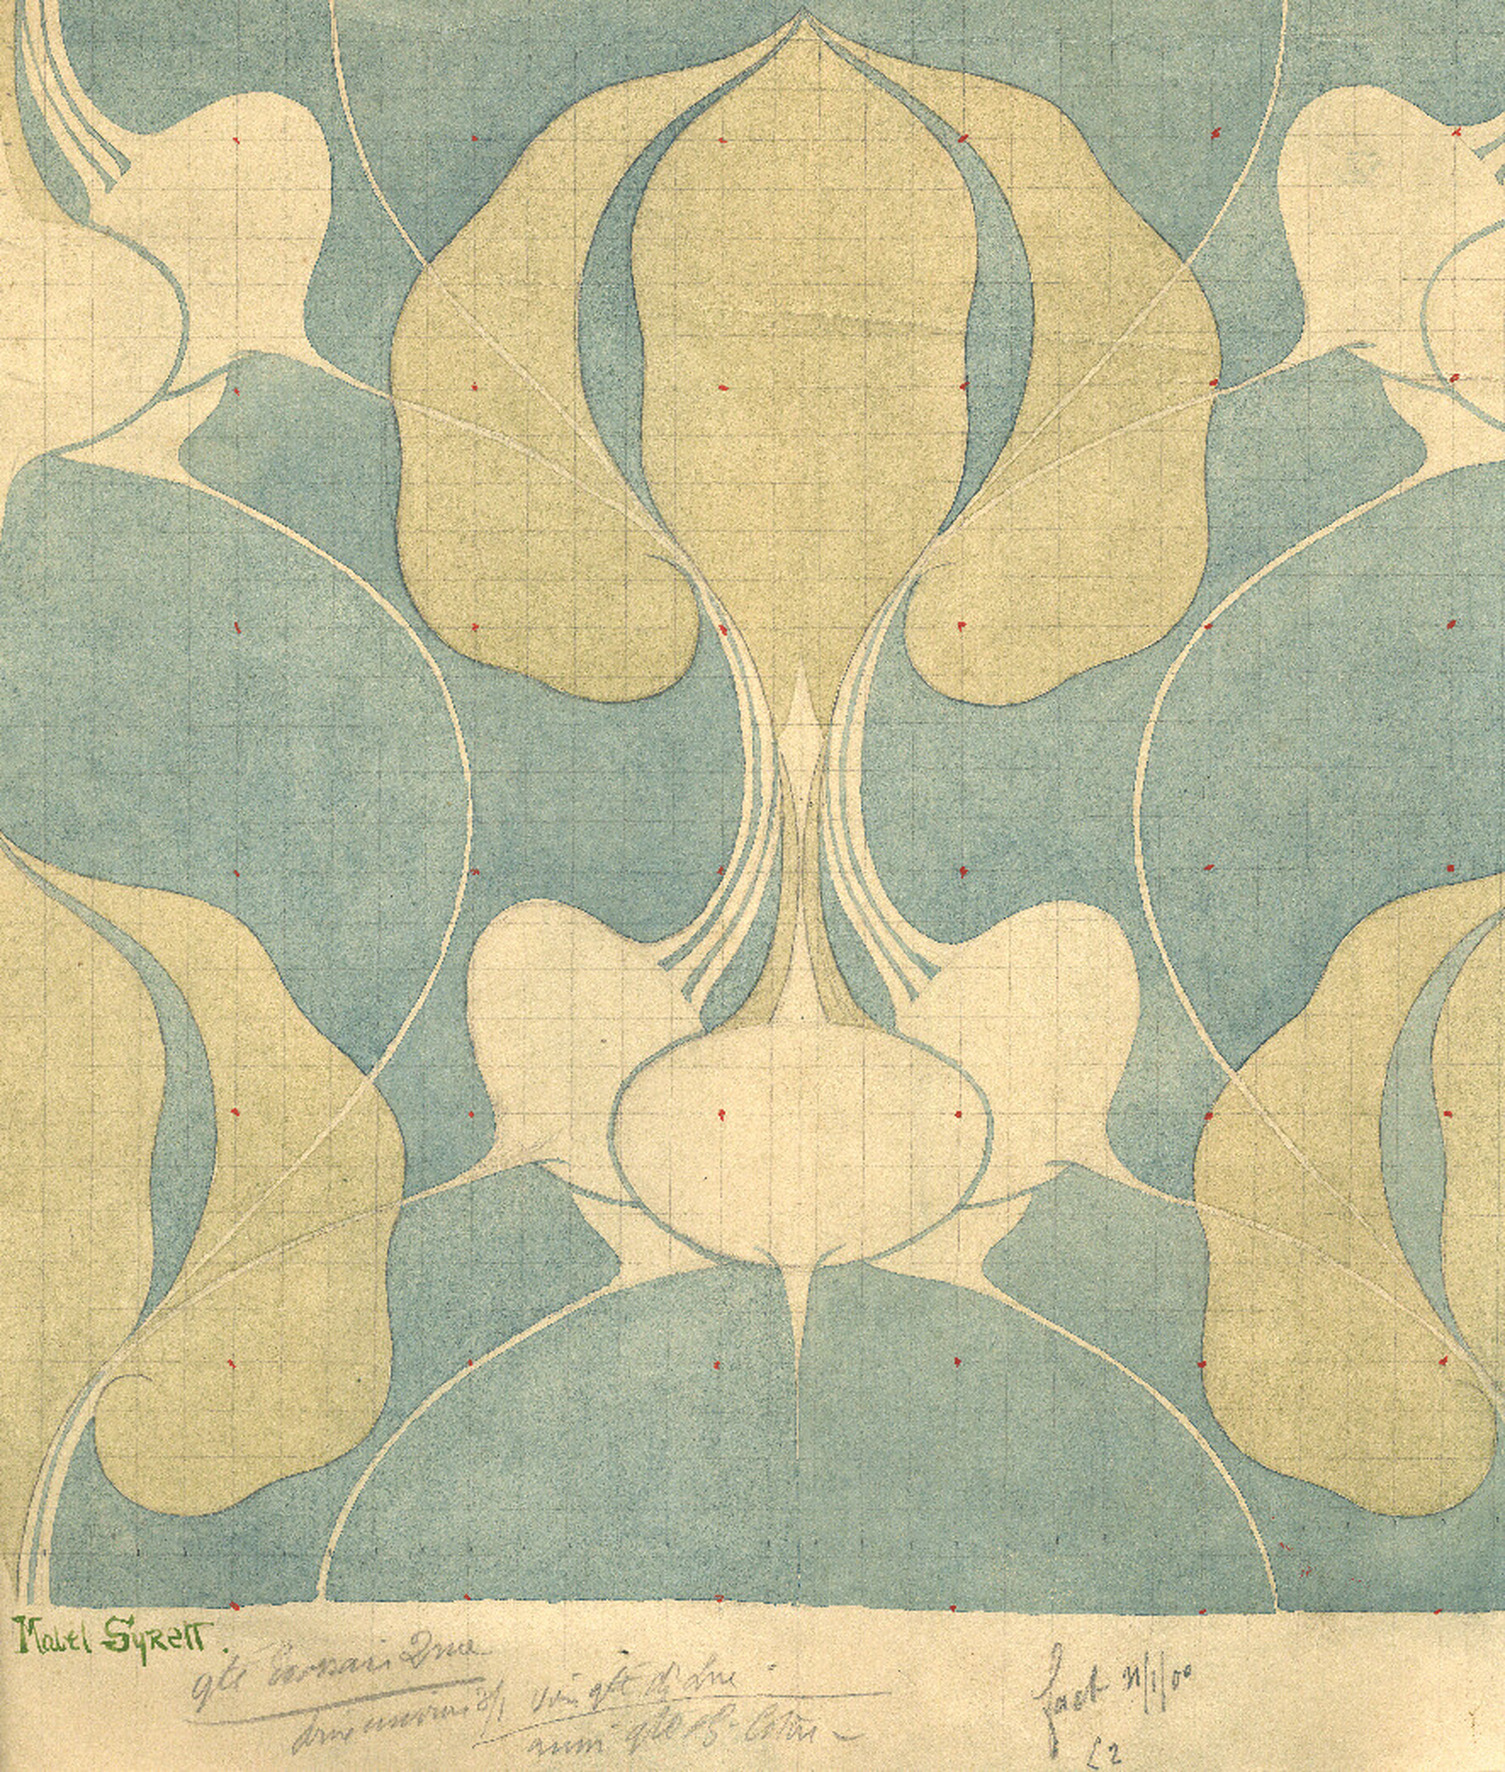 Fabric project, 1904. Brussels, private collection ©Mabell Syrett